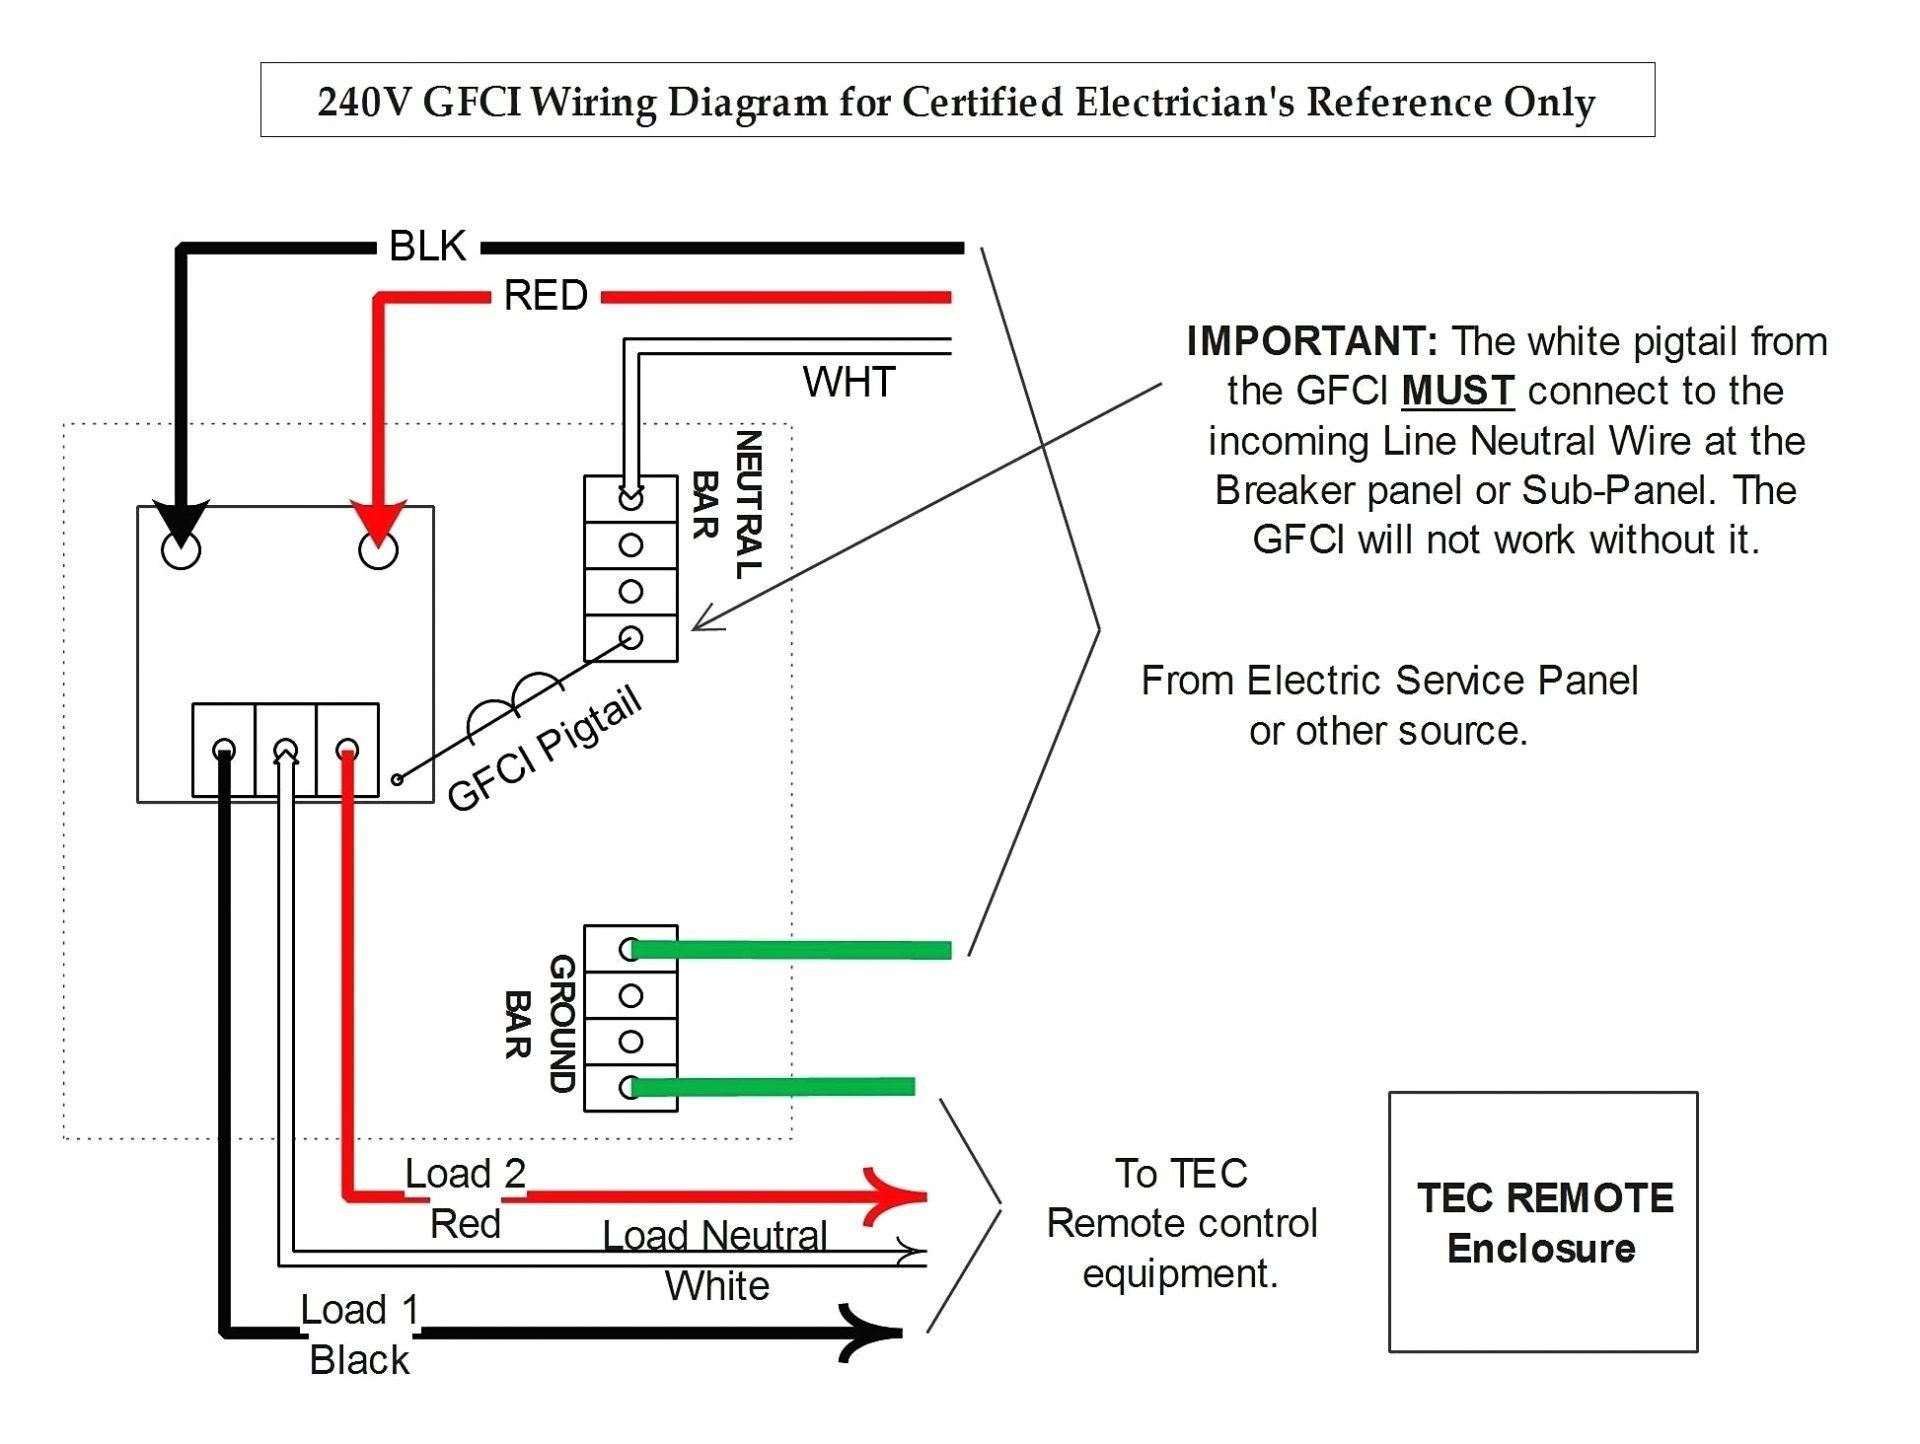 unique wiring diagram for extractor fan with timer diagram diagramsample diagramtemplate wiringdiagram diagramchart worksheet worksheettemplate [ 1920 x 1444 Pixel ]